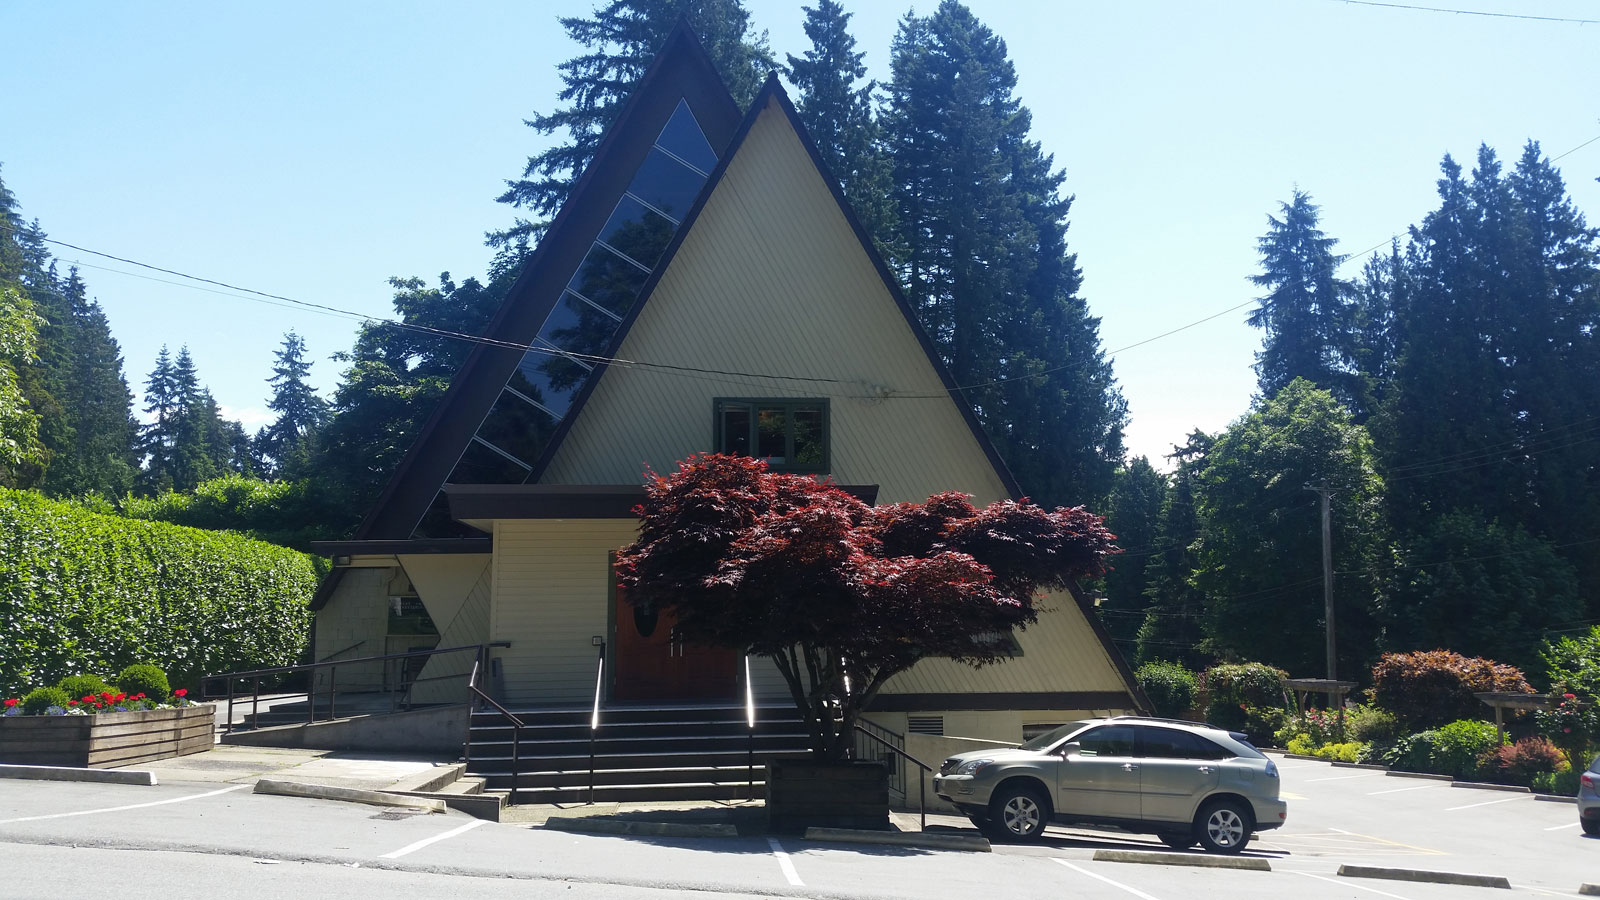 West Vancouver Presbyterian Church fire safety plan